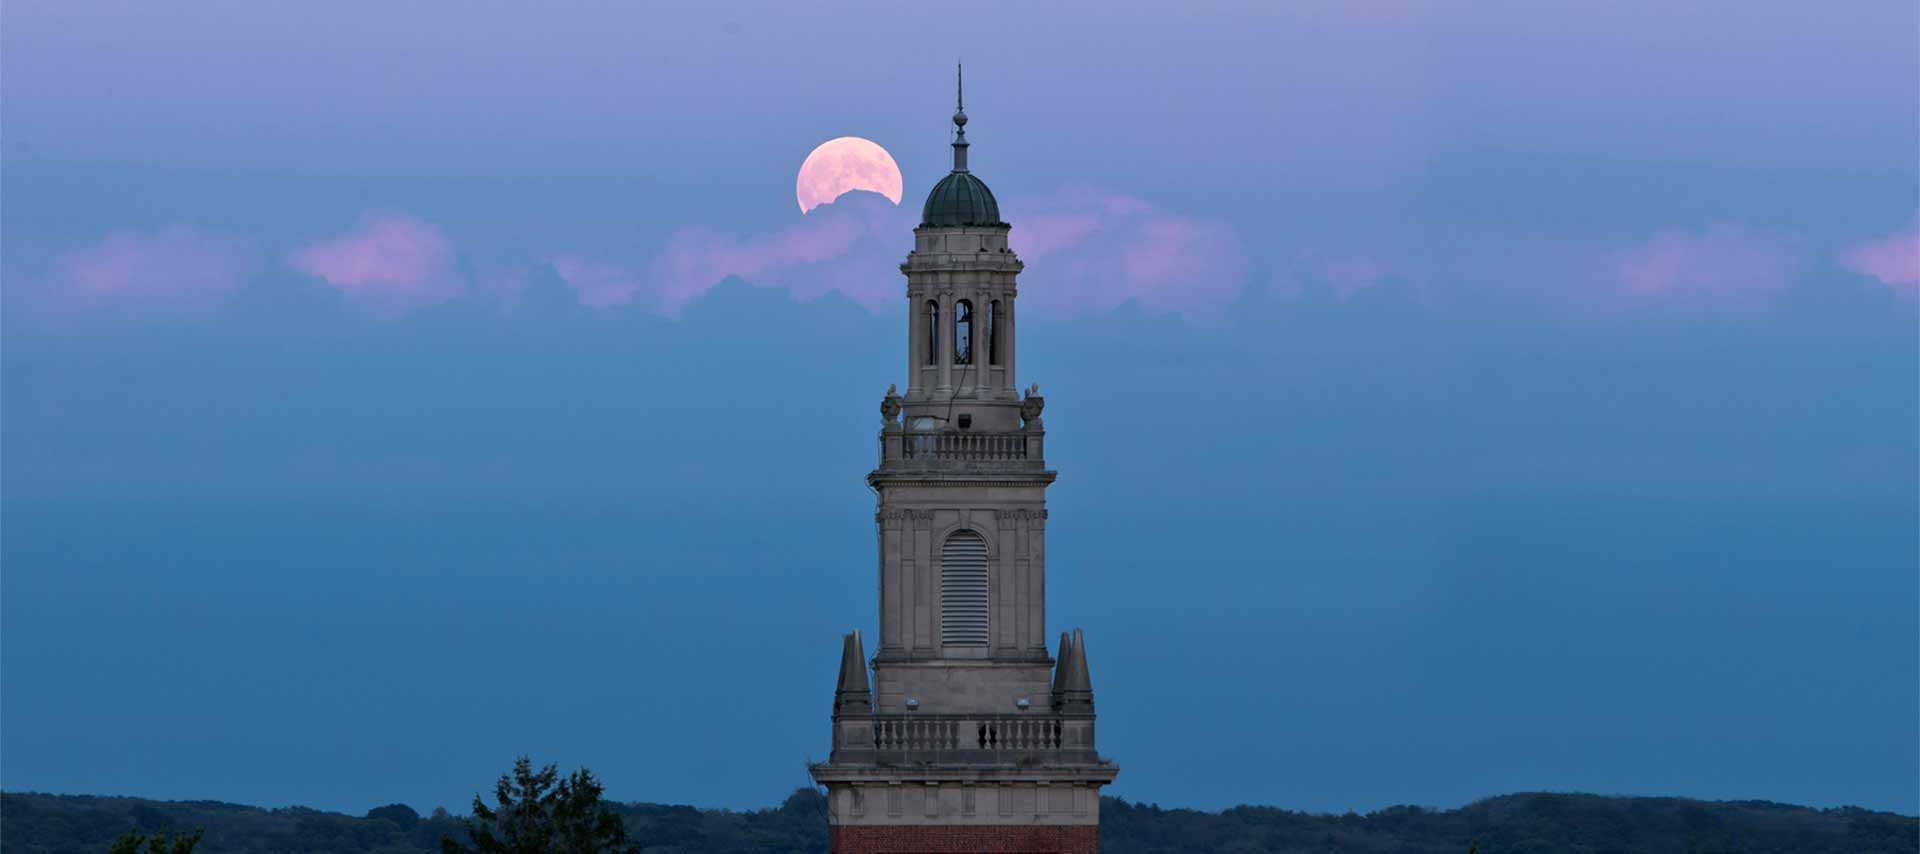 The bell tower of Swasey Chapel at twilight with a full moon in the background